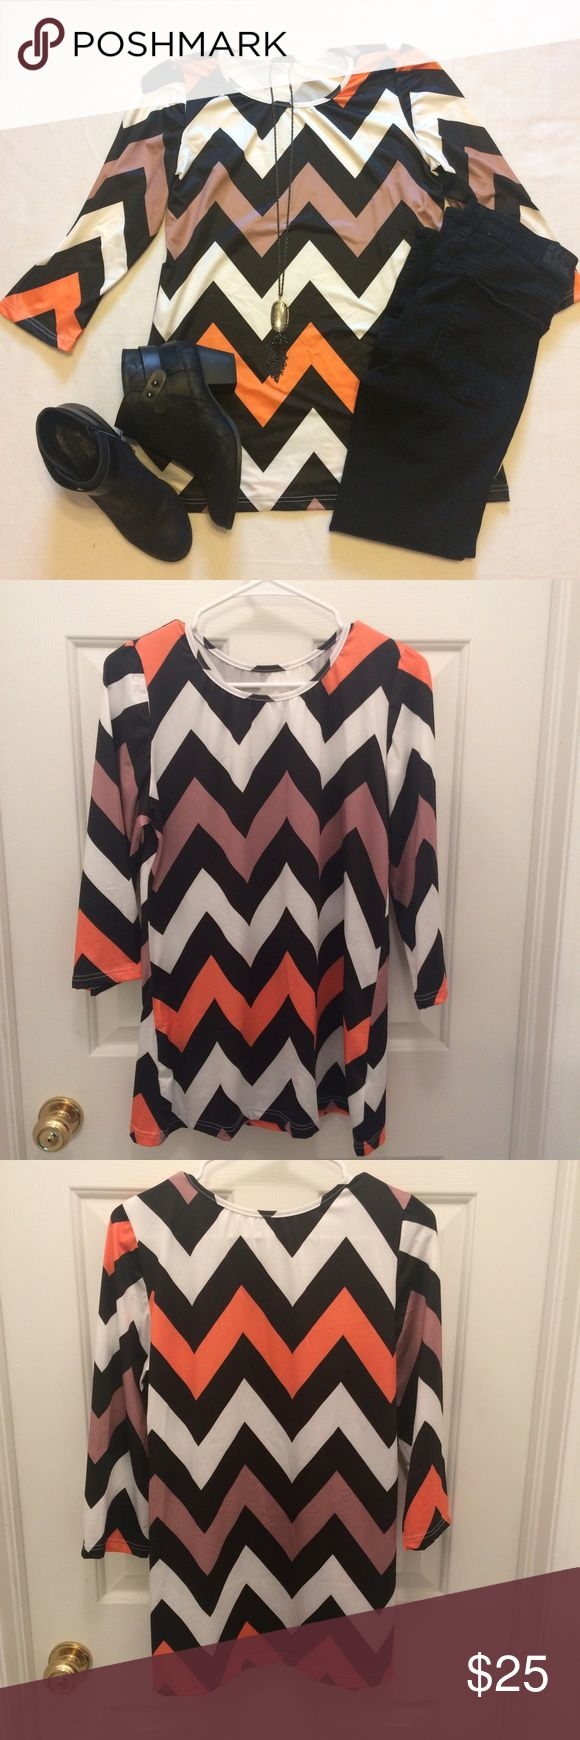 Adorable chevron top Black, tan, orange, and white chevron top. True to size. Super flattering fit. No trades. Price is firm. Tops Blouses